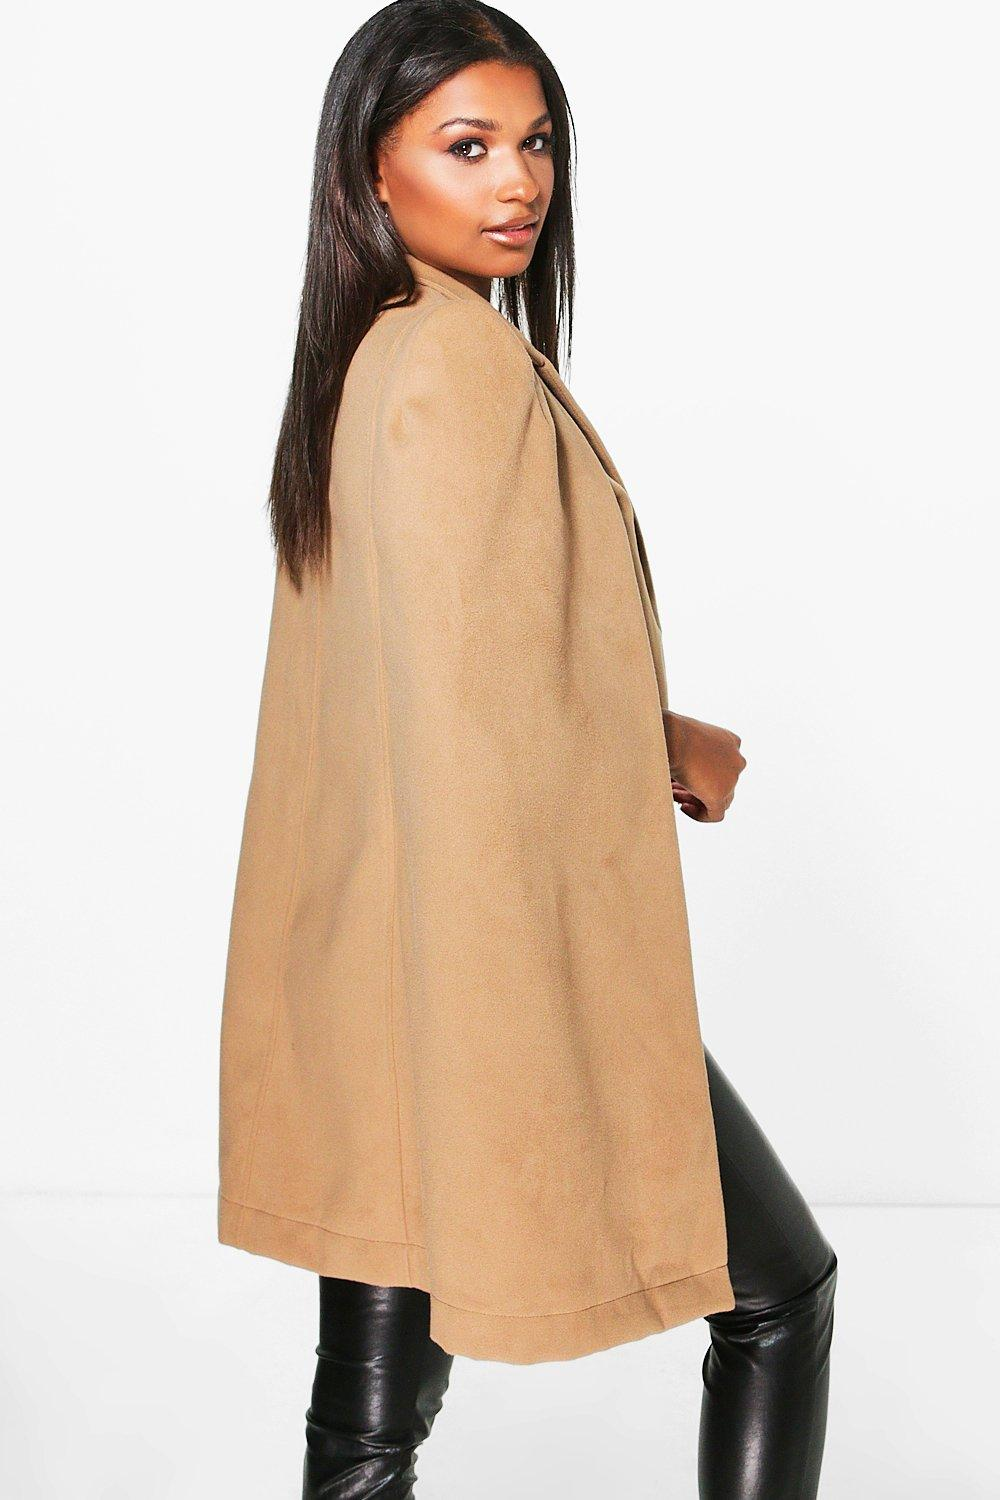 Cape Coat Women Winter Coats Trench Coats for Women. Clothink Women Solid Wool Hooded Split Front Poncho Cape. by Clothink. $ - $ $ 32 $ 38 99 Prime. FREE Shipping on eligible orders. Some sizes/colors are Prime eligible. out of 5 stars